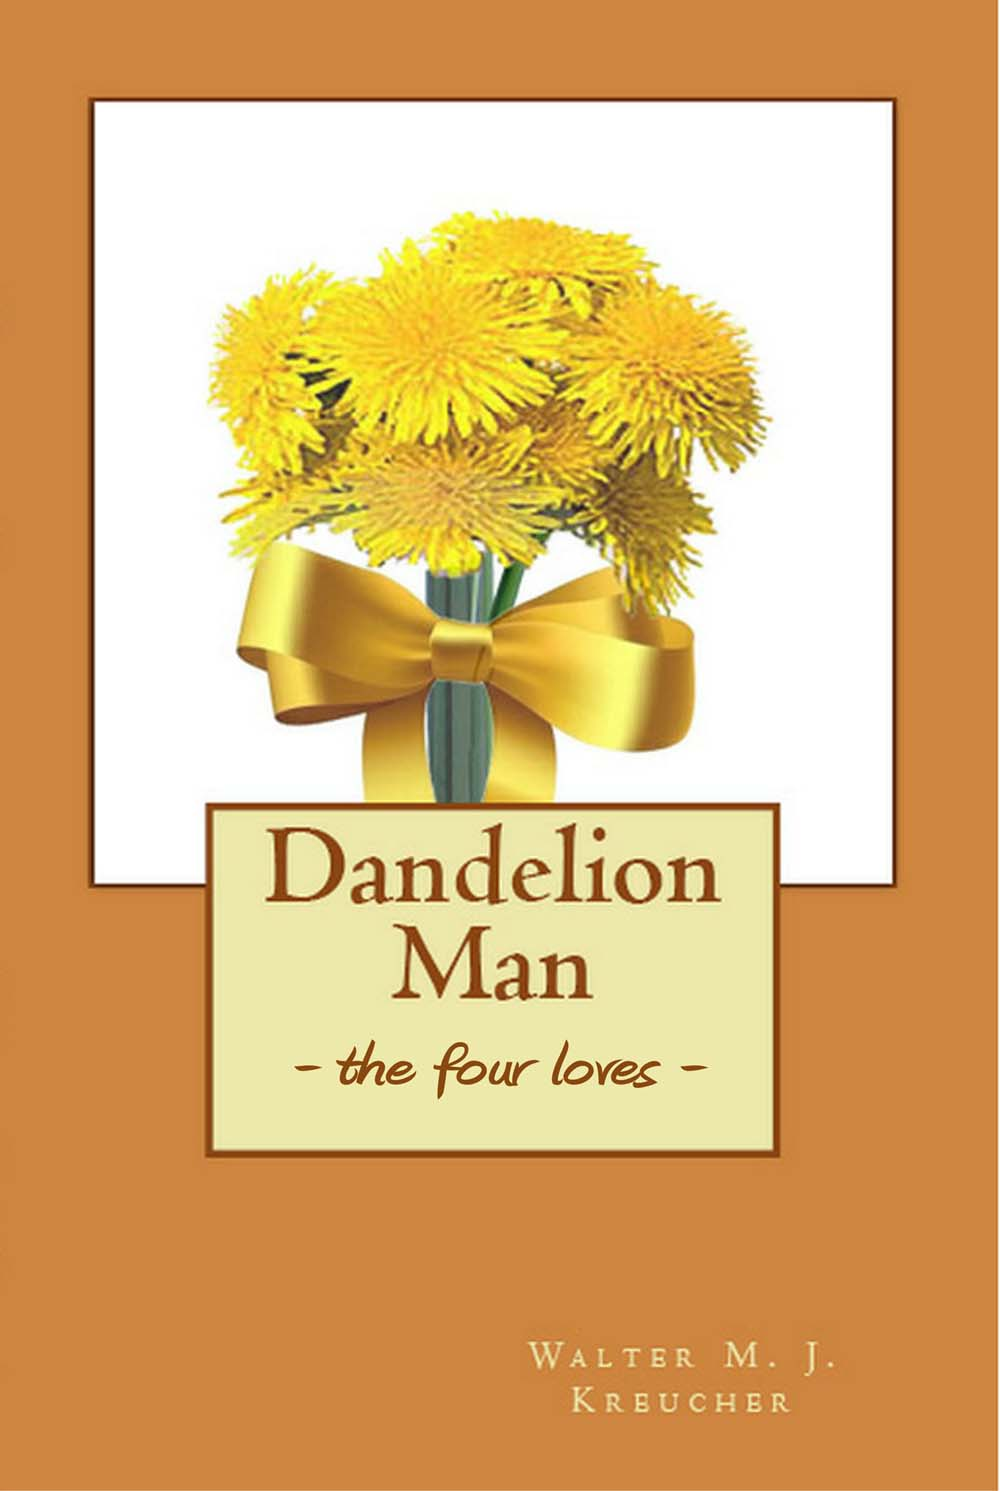 Dandelion Man small cover